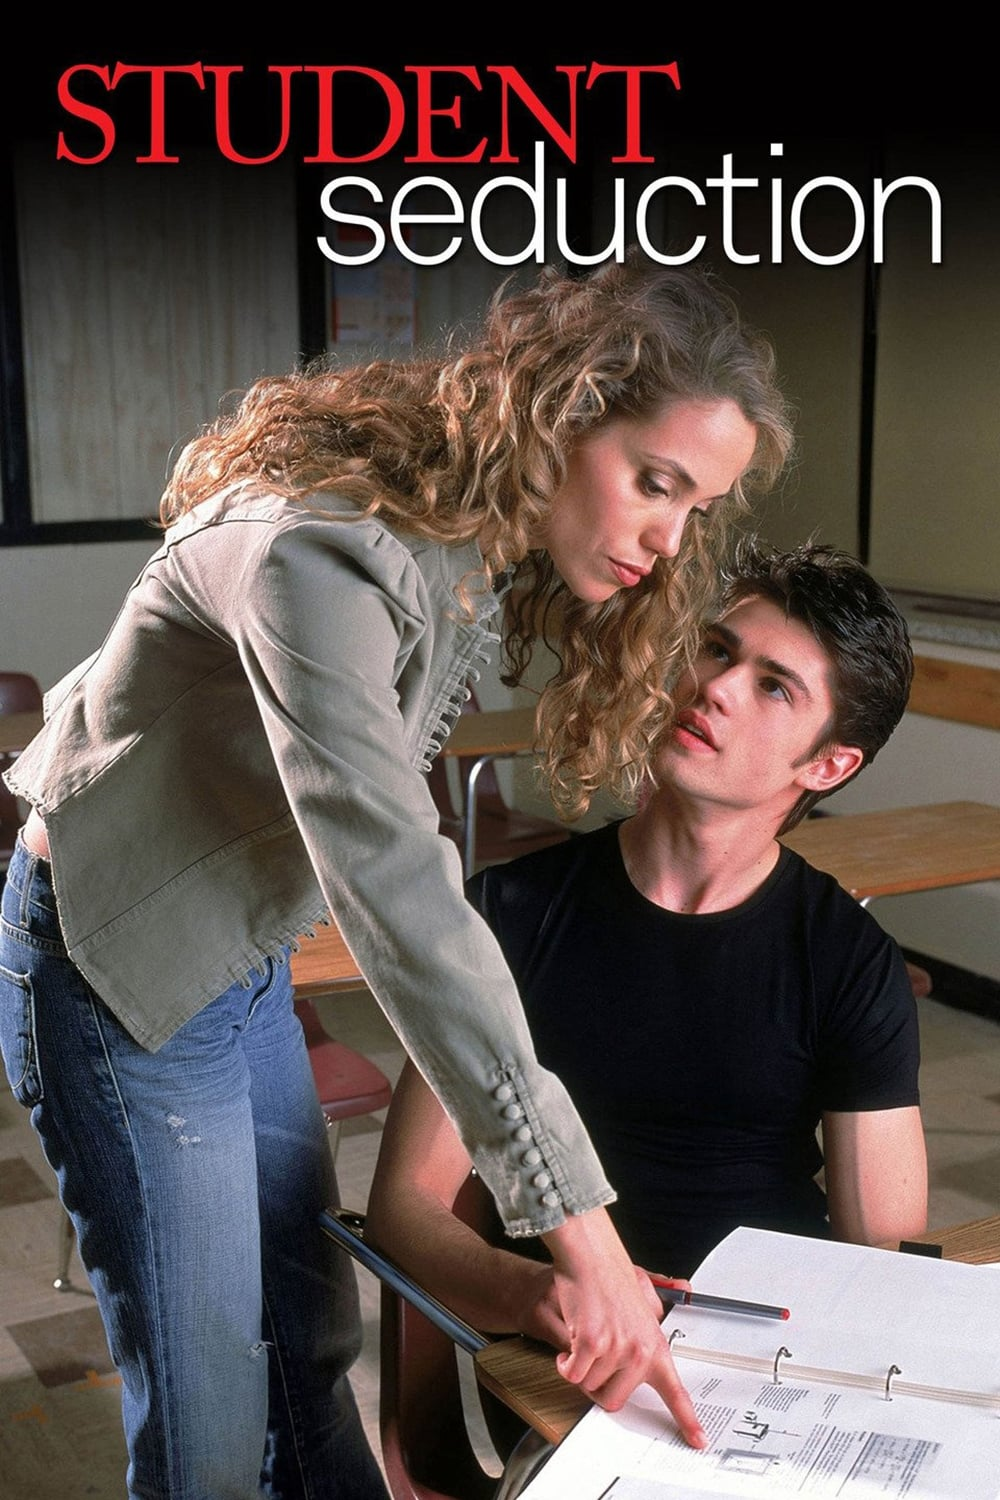 Student Seduction (2003)